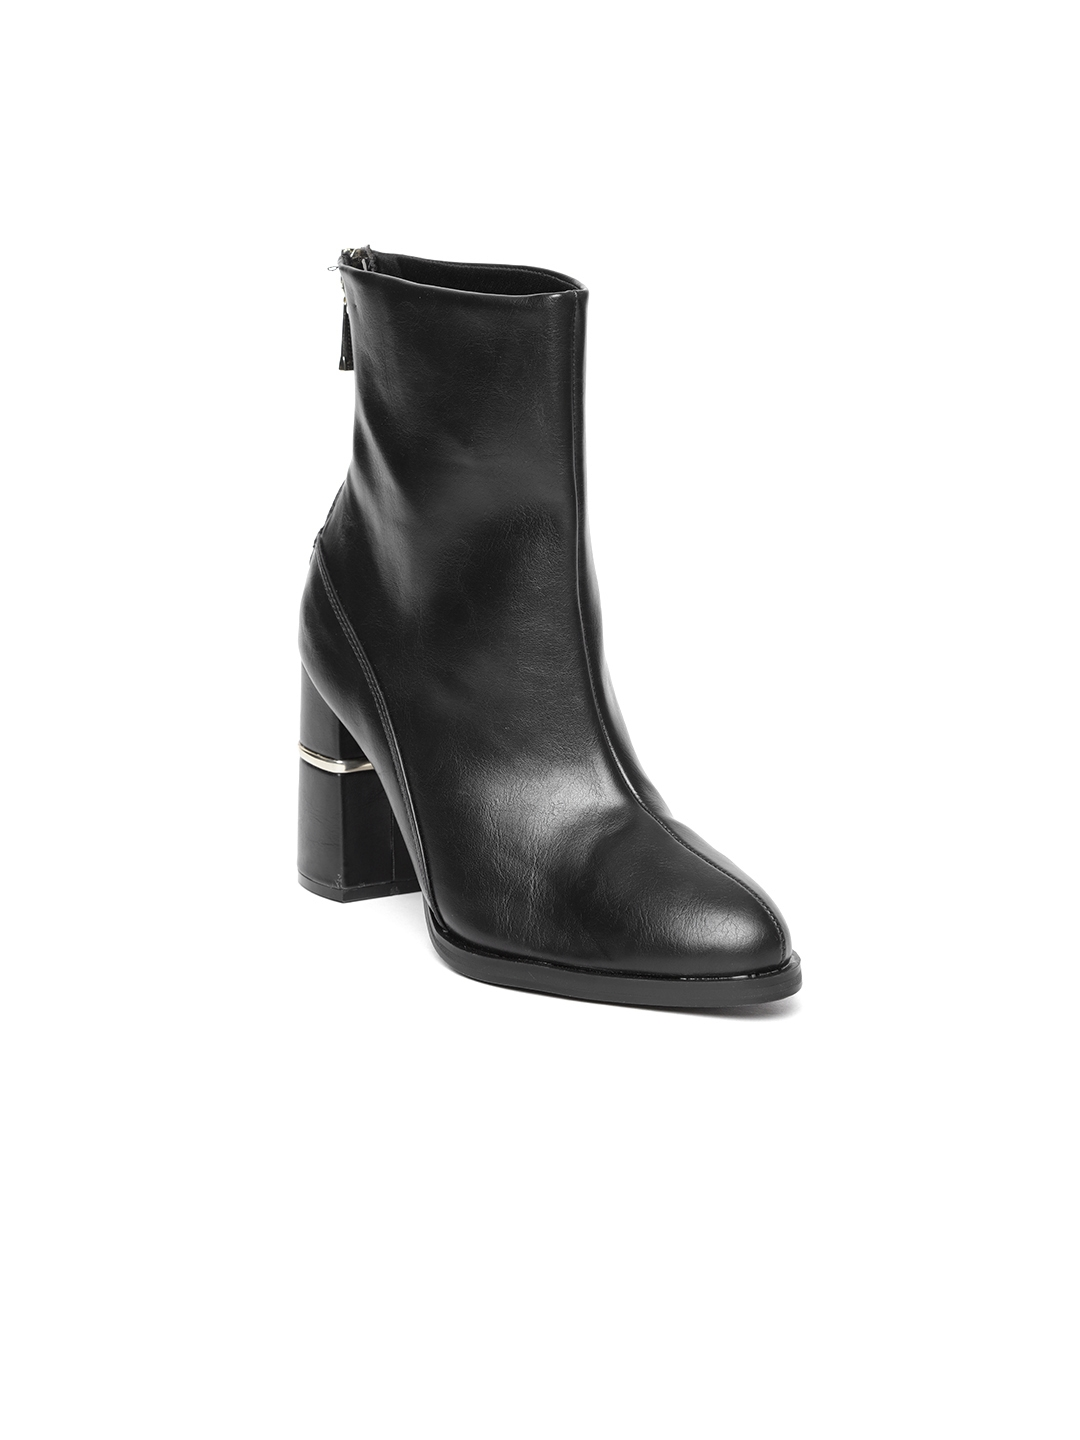 01e595a296cd Buy FOREVER 21 Women Black Solid High Top Heeled Boots - Heels for ...